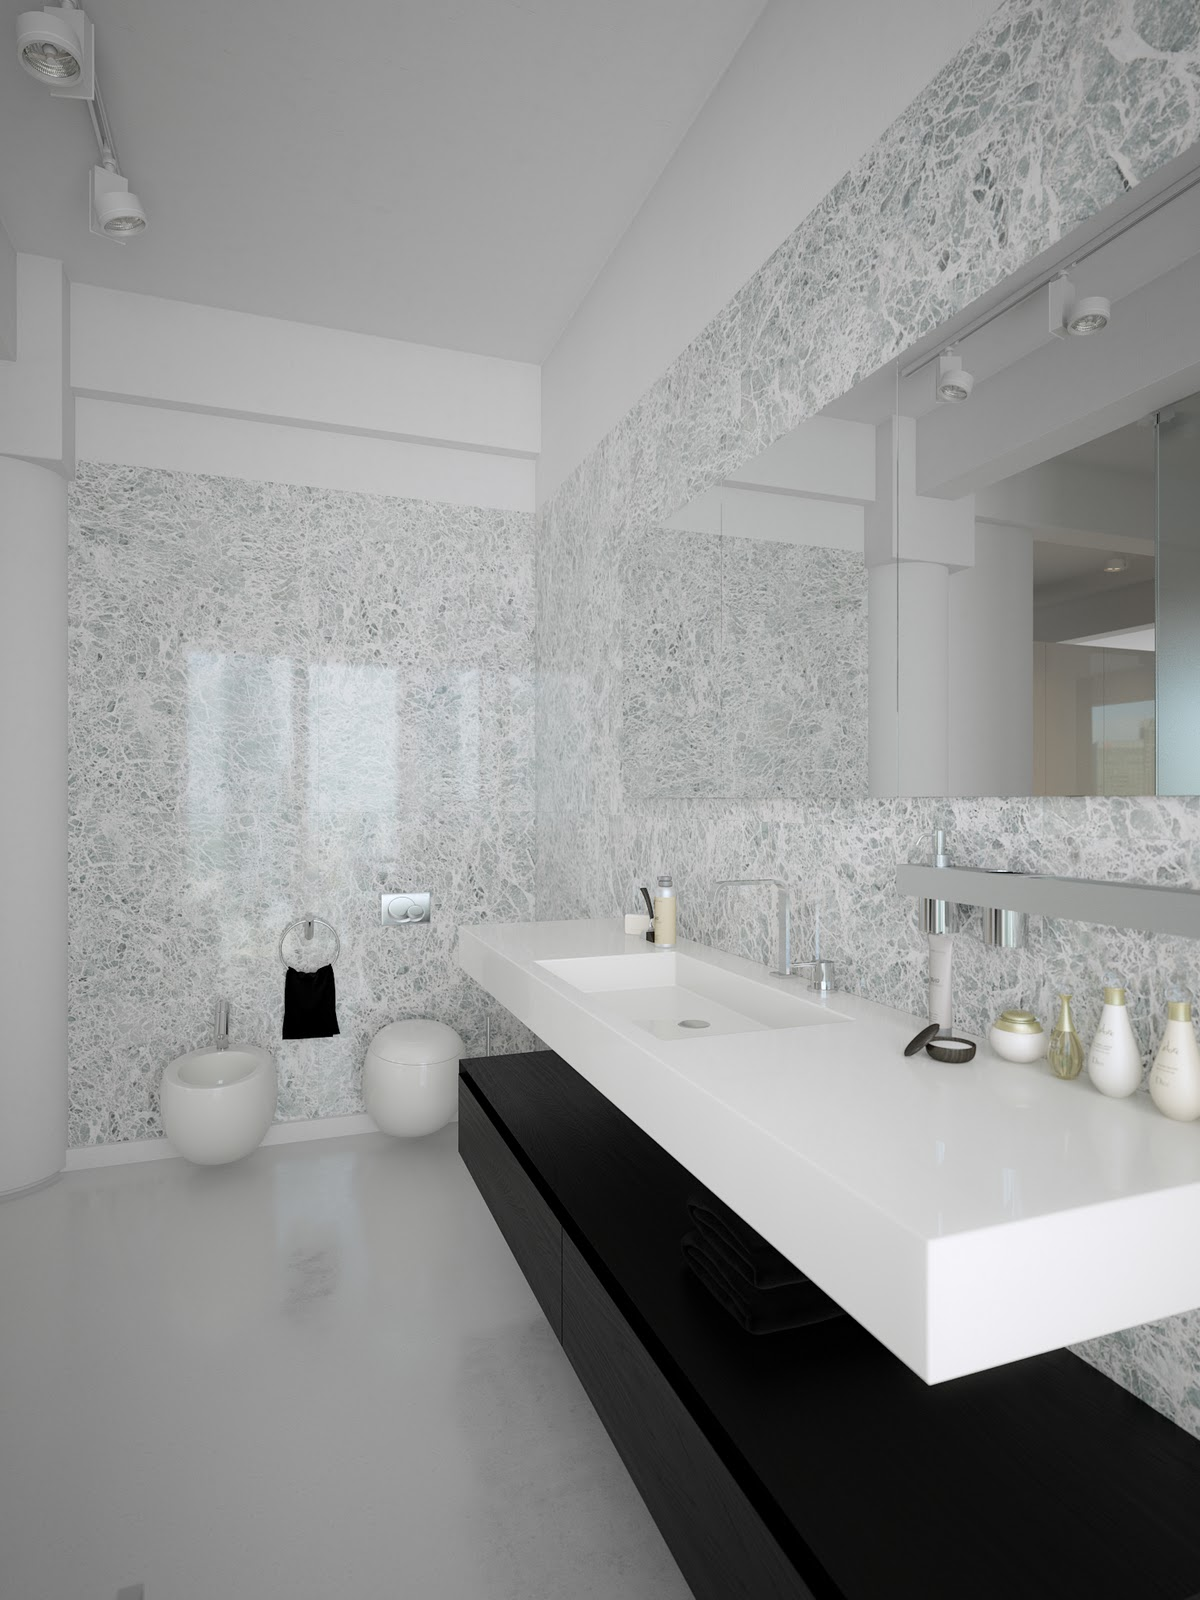 Trendy bathroom design ideas combined with white color for Trendy bathroom ideas